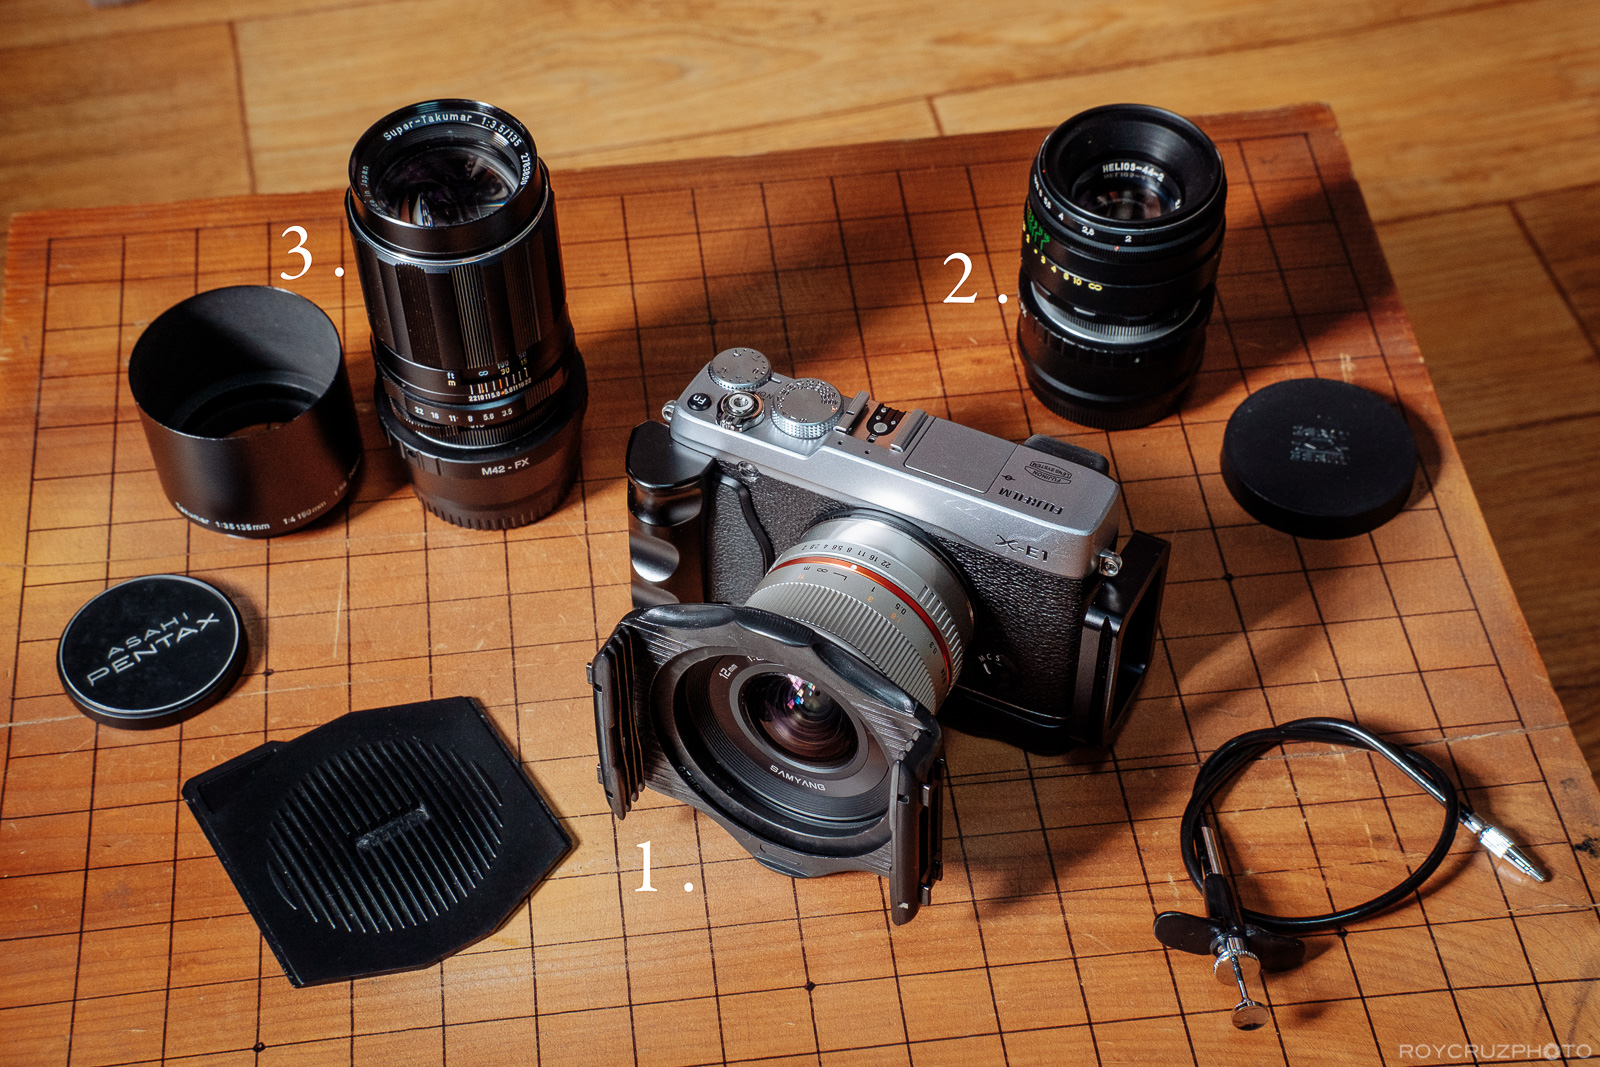 Manual Samyang M42 Lenses With Fuji X-1